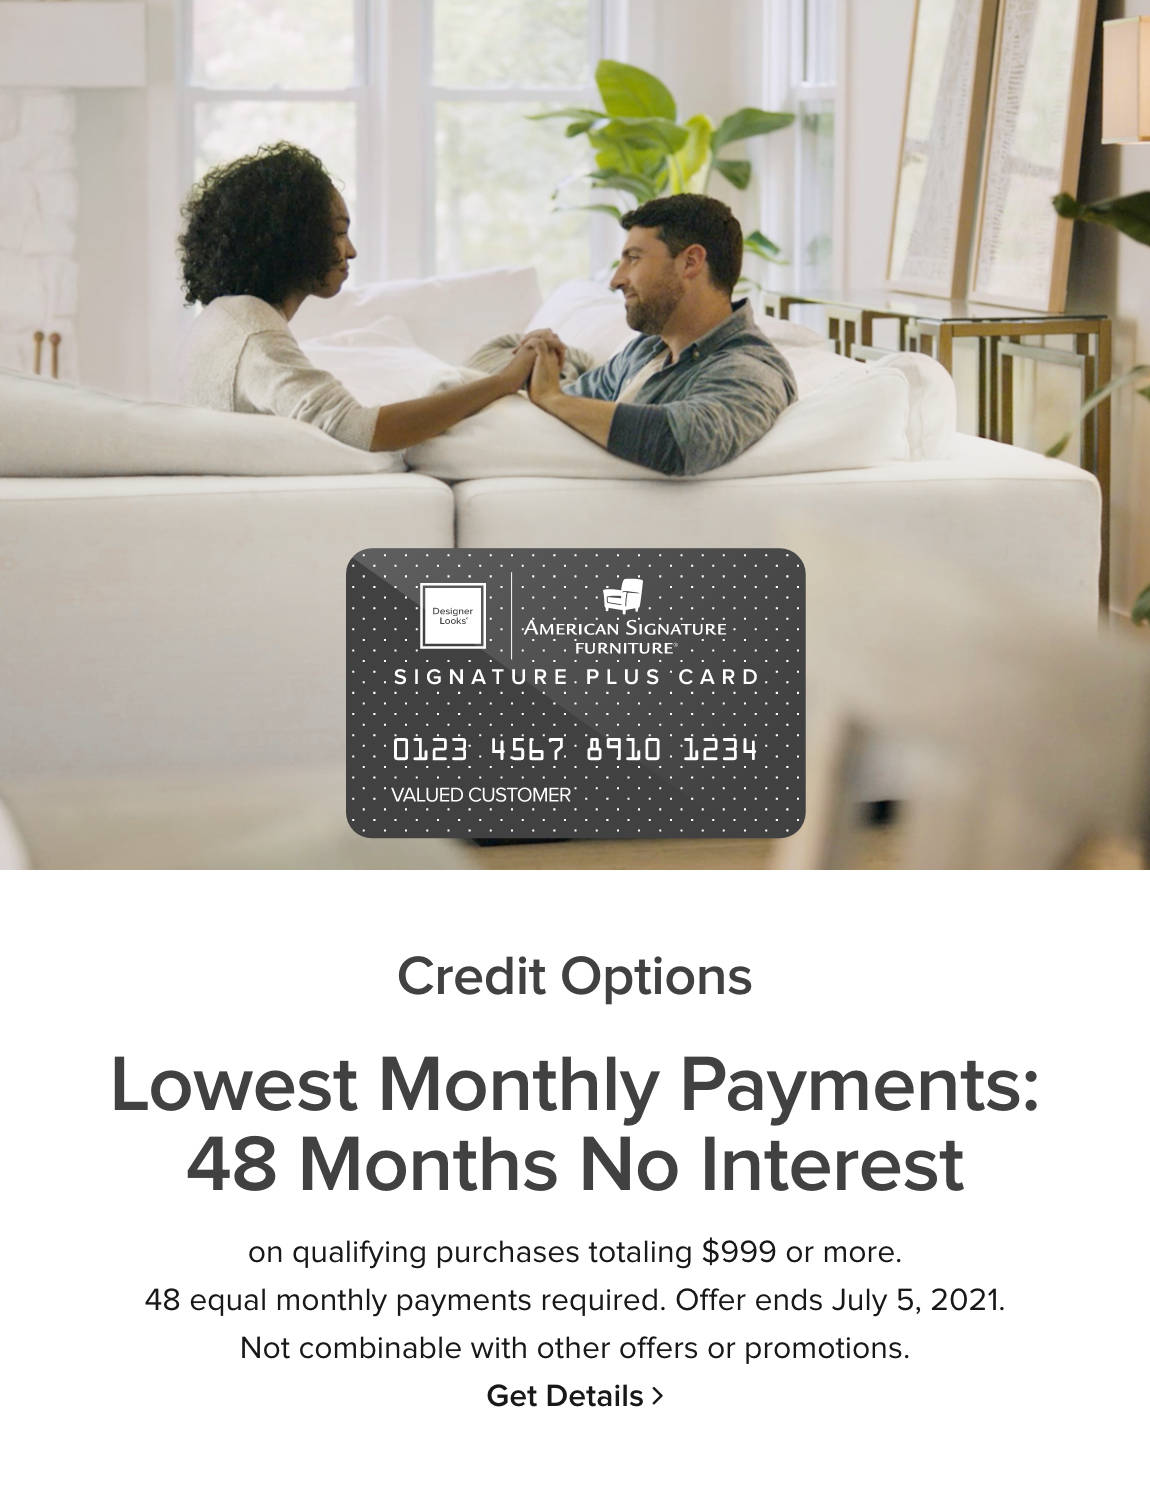 Credit Options: Lowest Monthly Payments: 36 Months No Interest - on qualifying purchases totaling $999 or more. 48 equal monthly payments required. Offer ends July 5th, 2021. Not combinable with other offers or promotions. Get Details